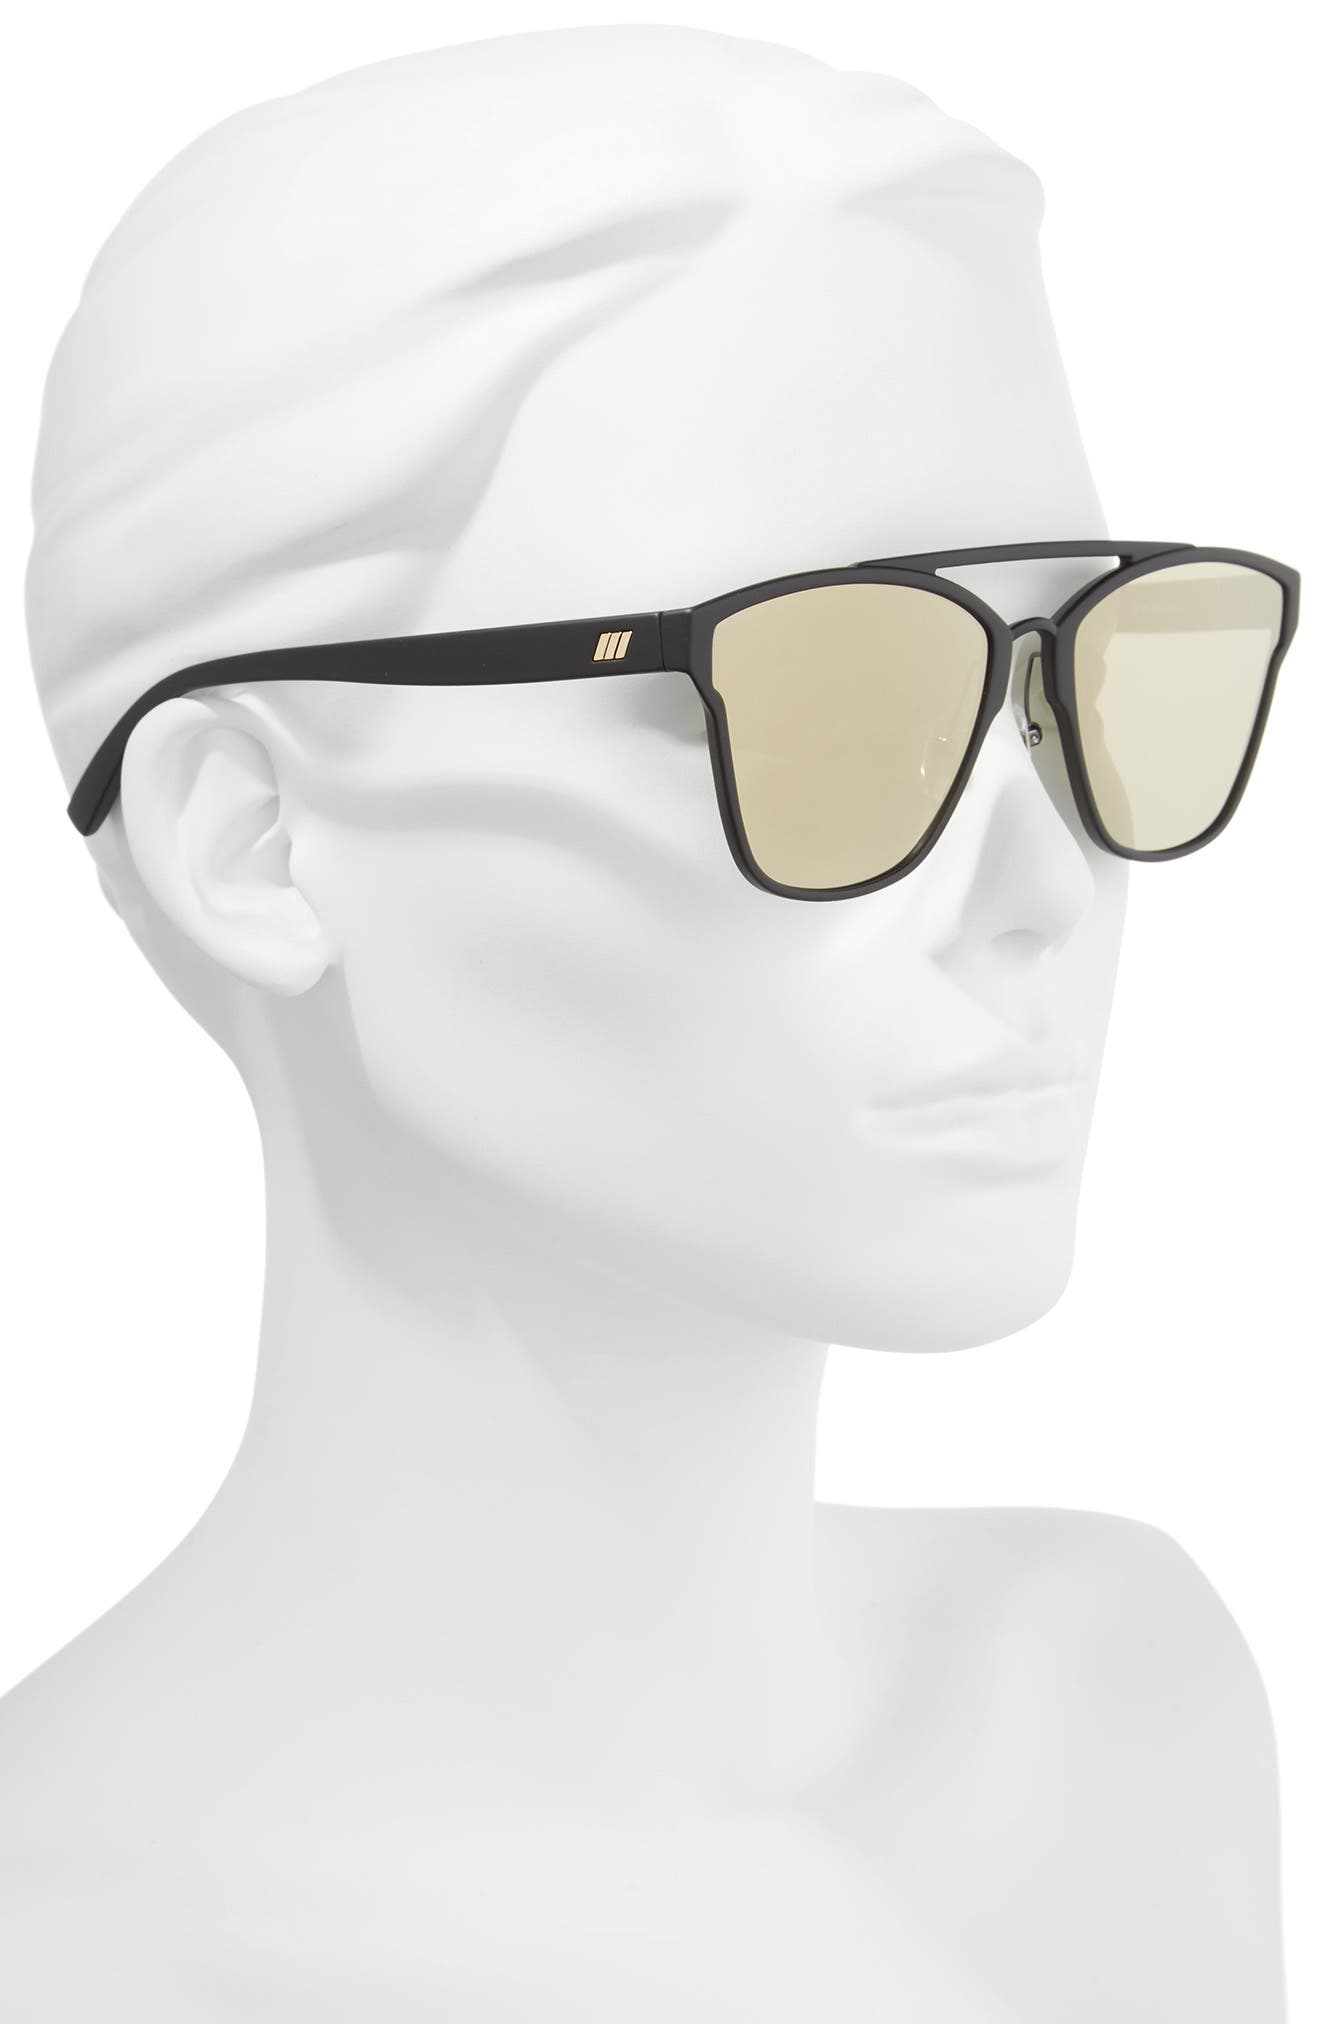 Herstory 55mm Aviator Sunglasses,                             Alternate thumbnail 2, color,                             Black Rubber